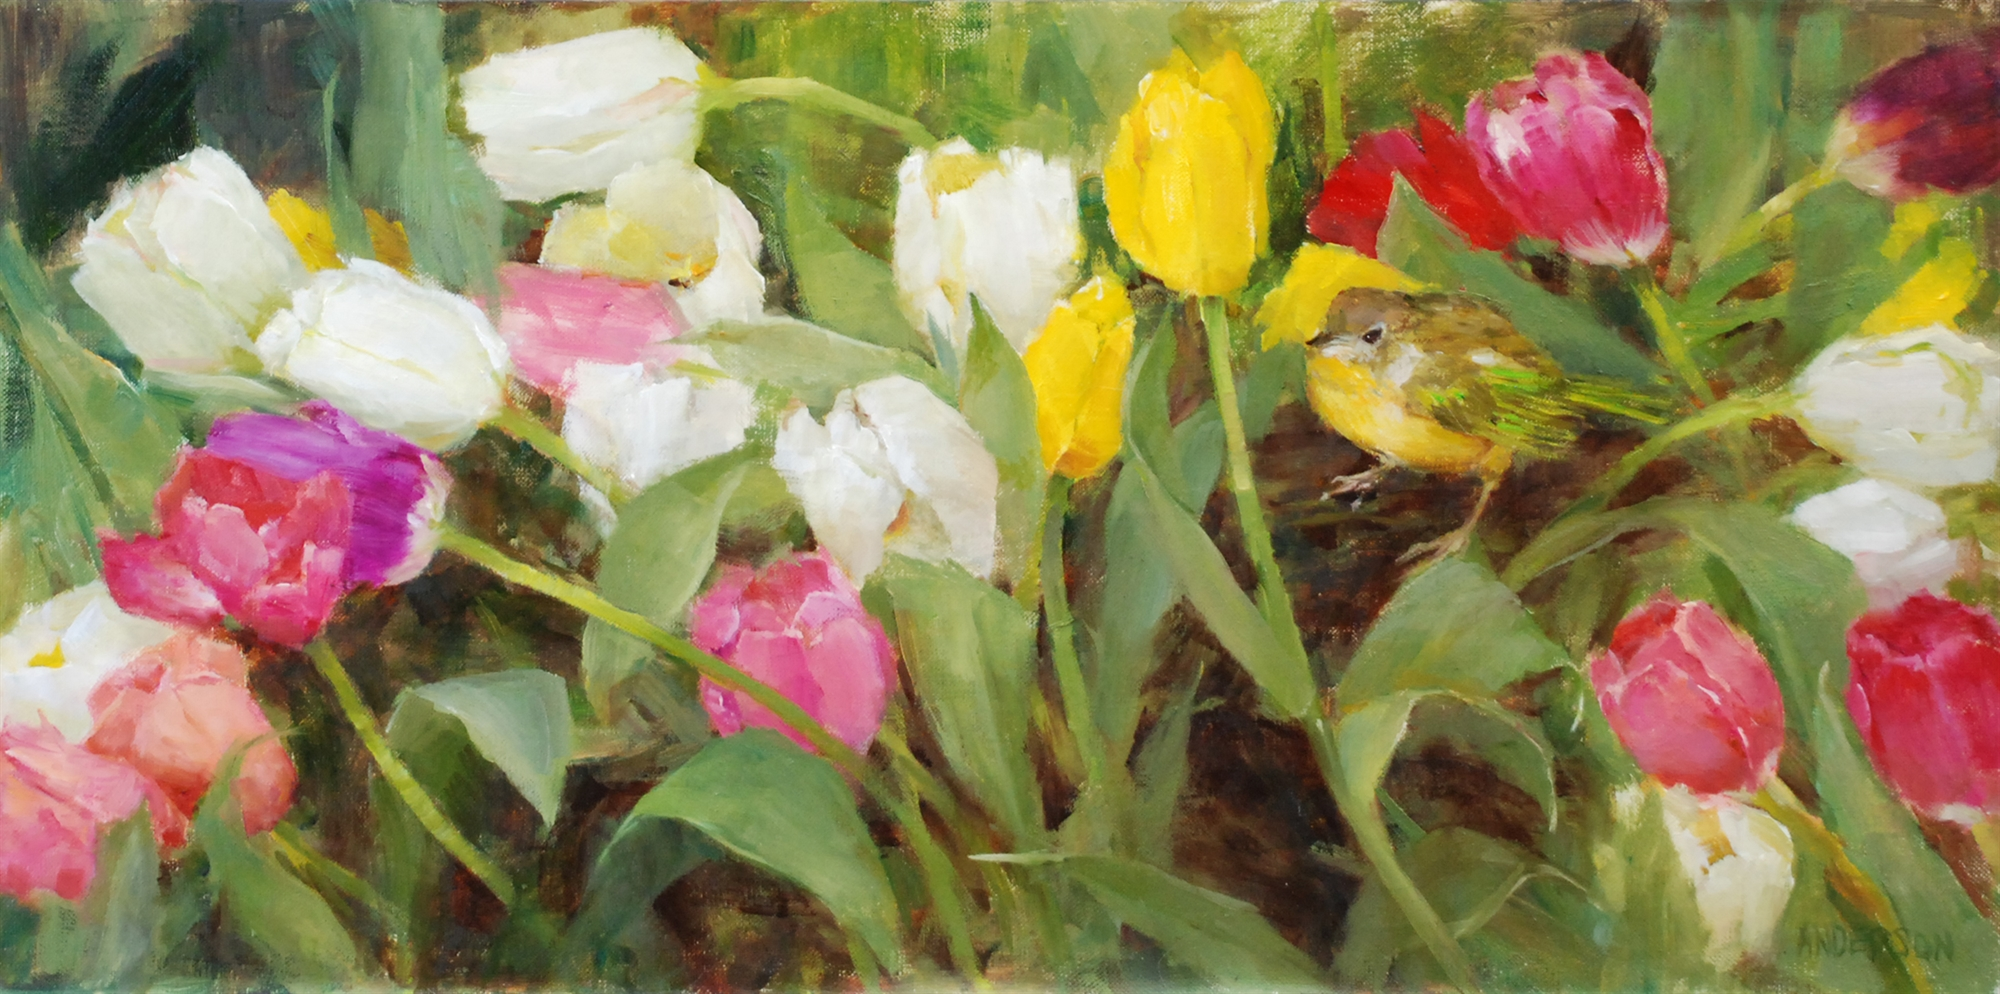 Tulips and Warbler by Kathy Anderson